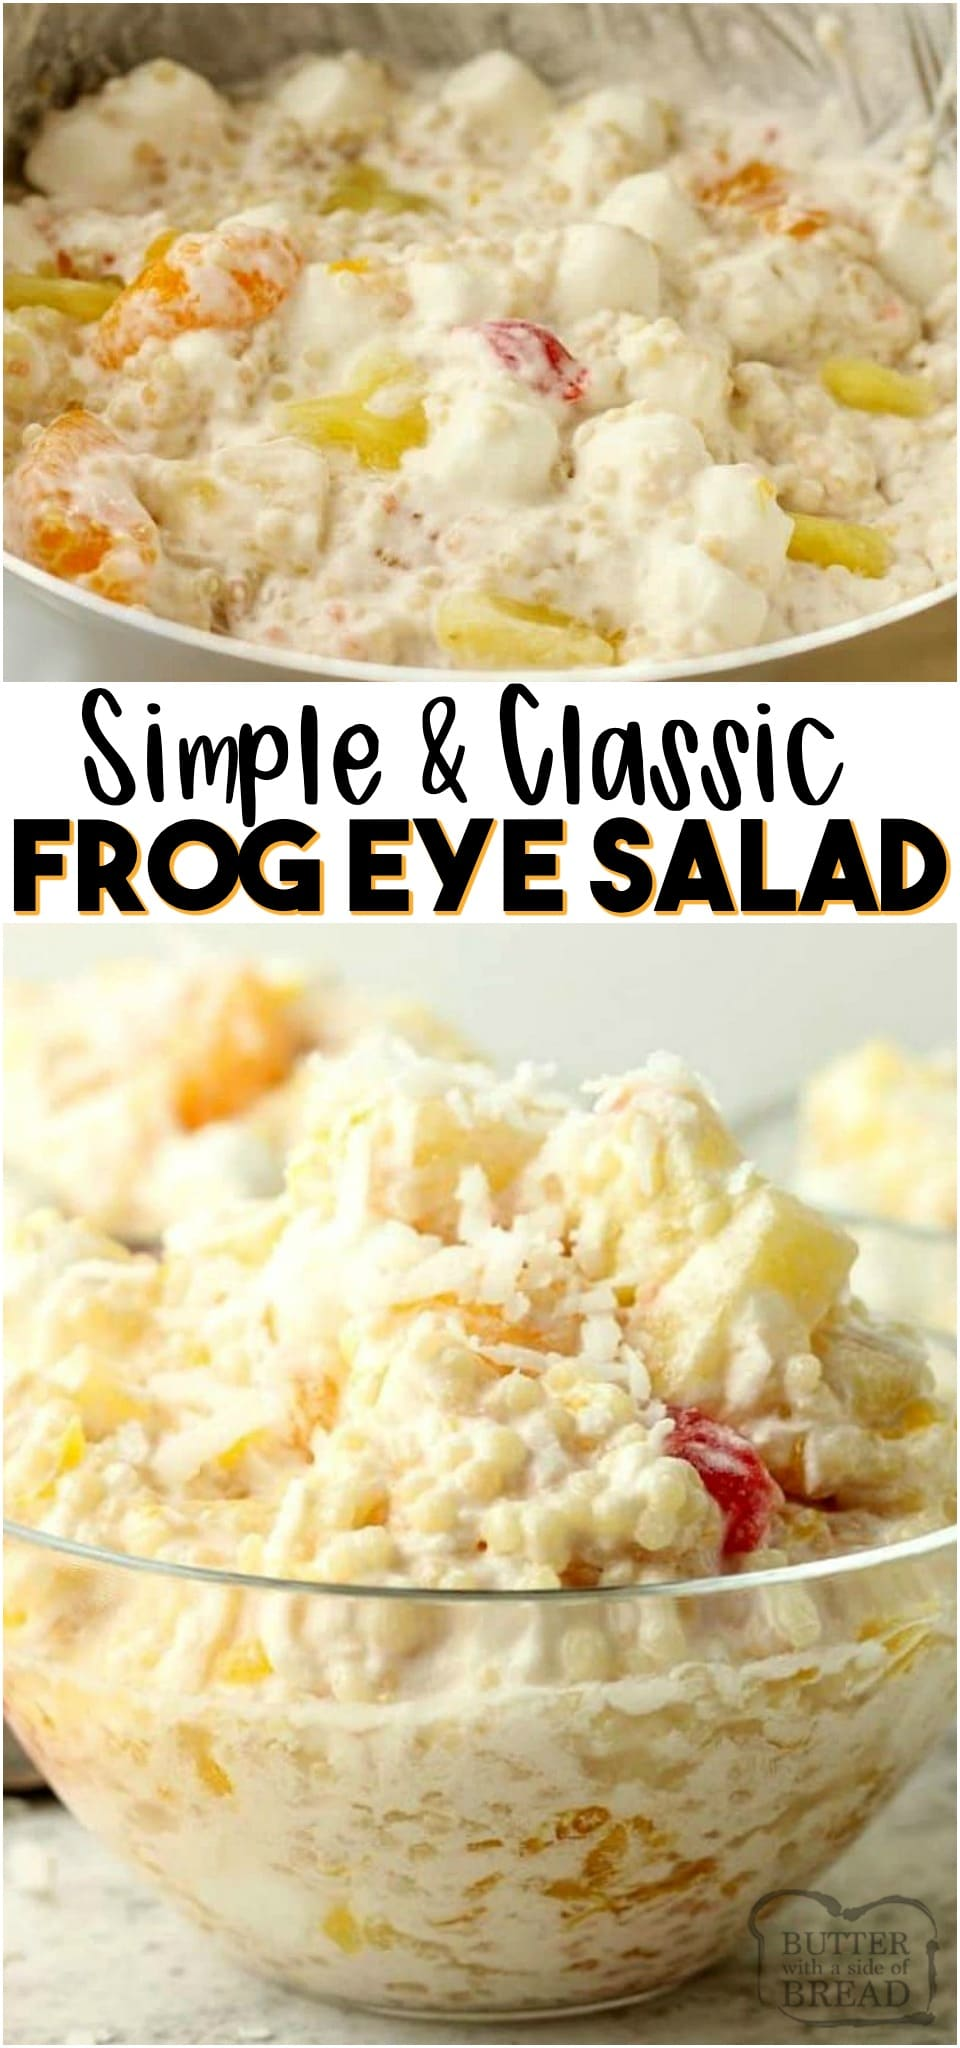 Frog Eye Salad is a classic pot luck recipe. This delicious sweet fruit salad has tiny pasta, mandarin oranges, pineapple, whipped topping, marshmallows, coconut and sweet cherries. #salad #fruit #frogeye #easysalad #fruitsalad #holiday #recipe from BUTTER WITH A SIDE OF BREAD